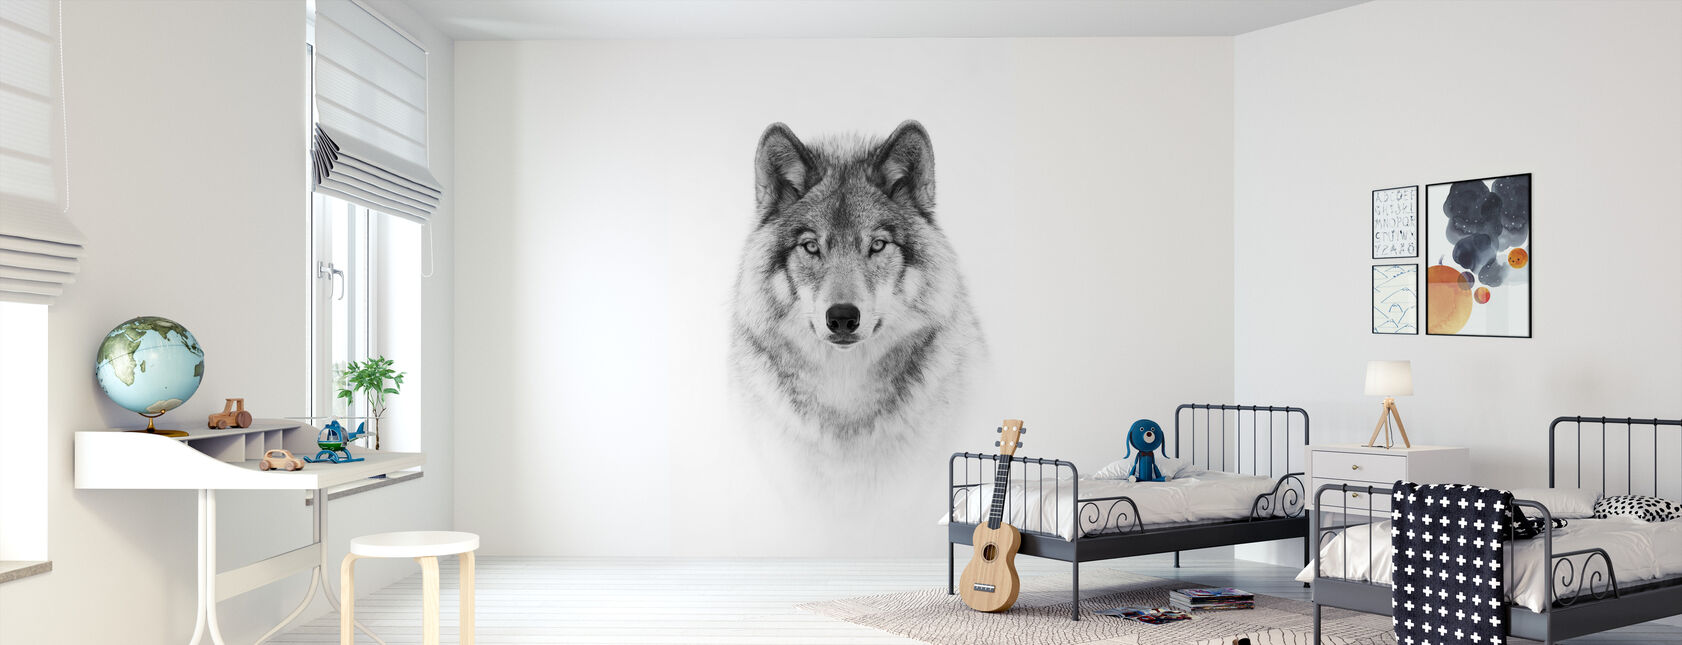 Portrait of a Timber Wolf - Wallpaper - Kids Room